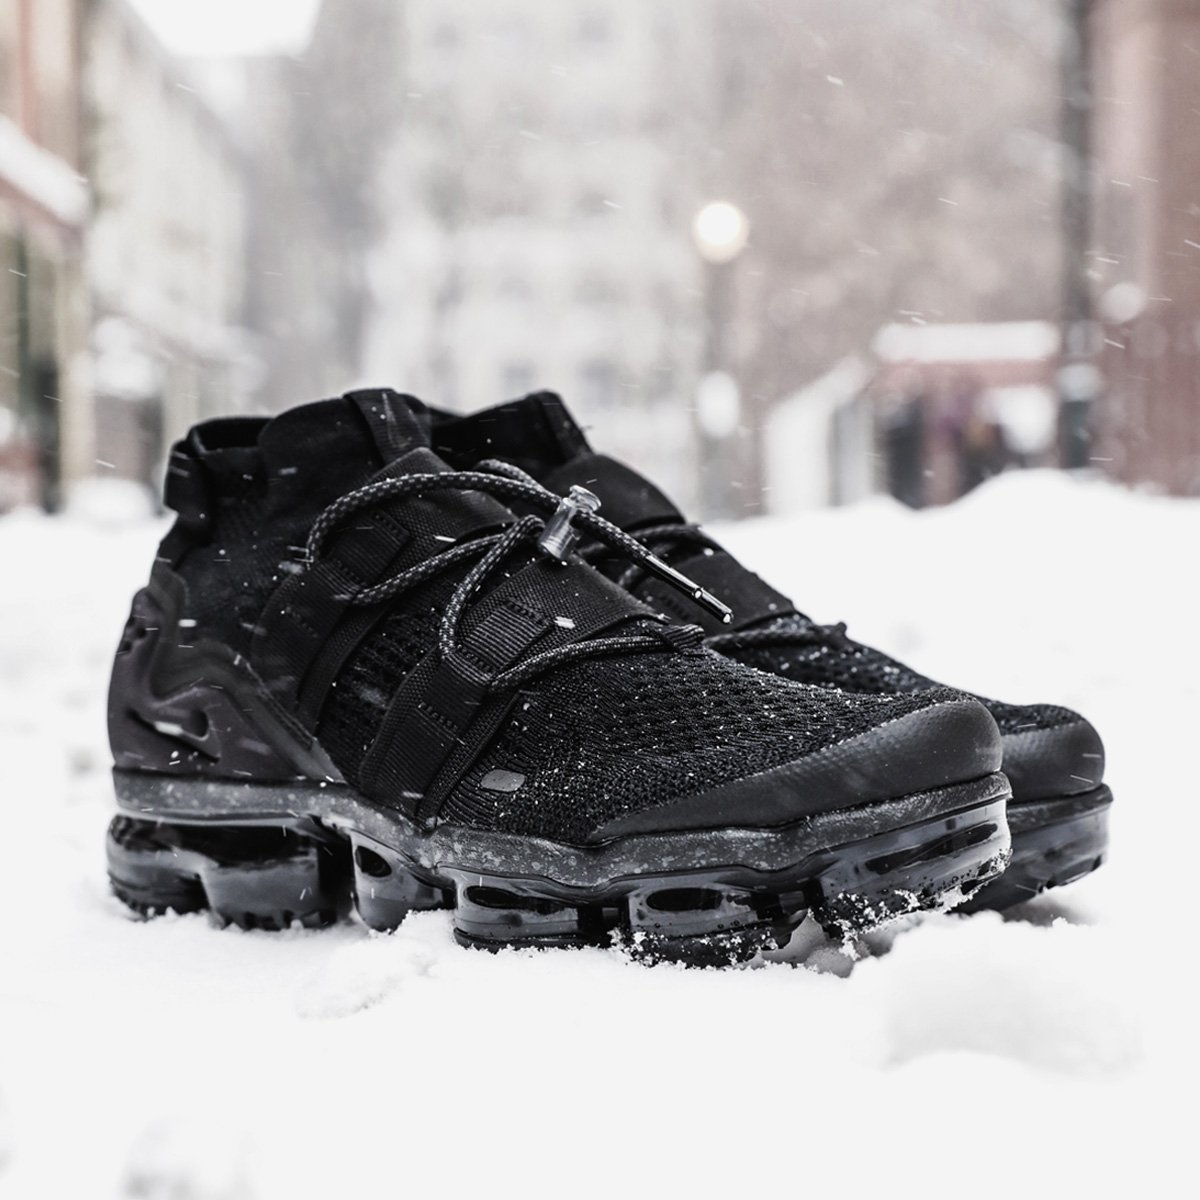 8f6439f8b8c Nike Air Vapormax Flyknit Utility  Maximum Black  is now available  in-store. This silhouette is a three-quarter-high mid cut with toggle  lacing system to ...